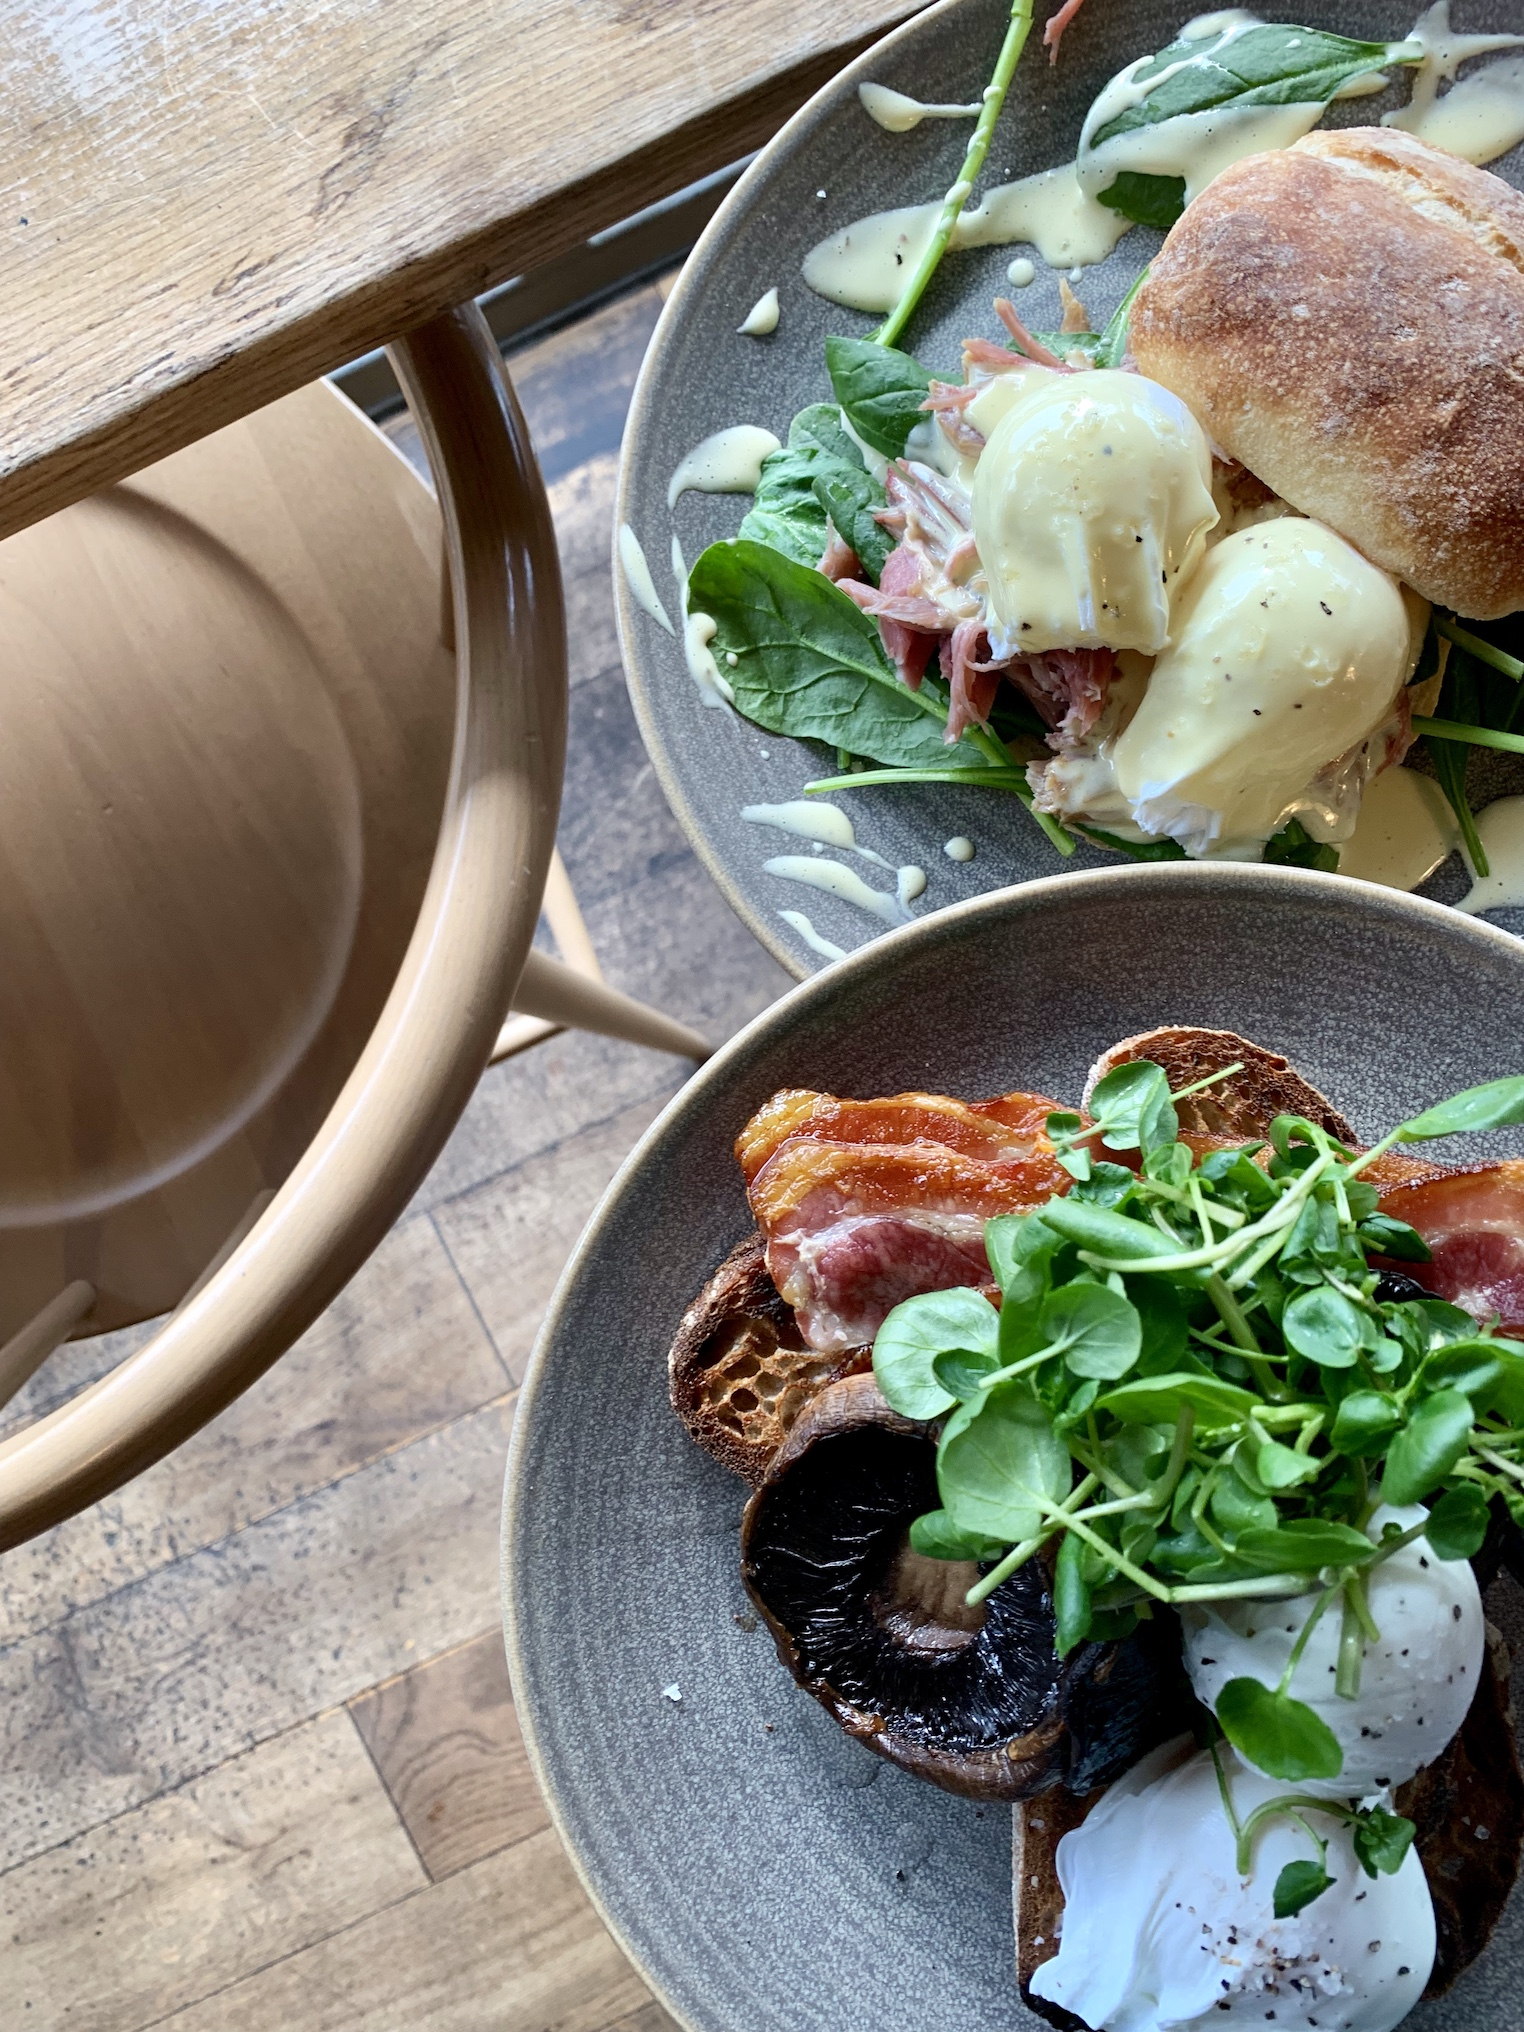 homeground-brunch-copy via @carvetiicoffee